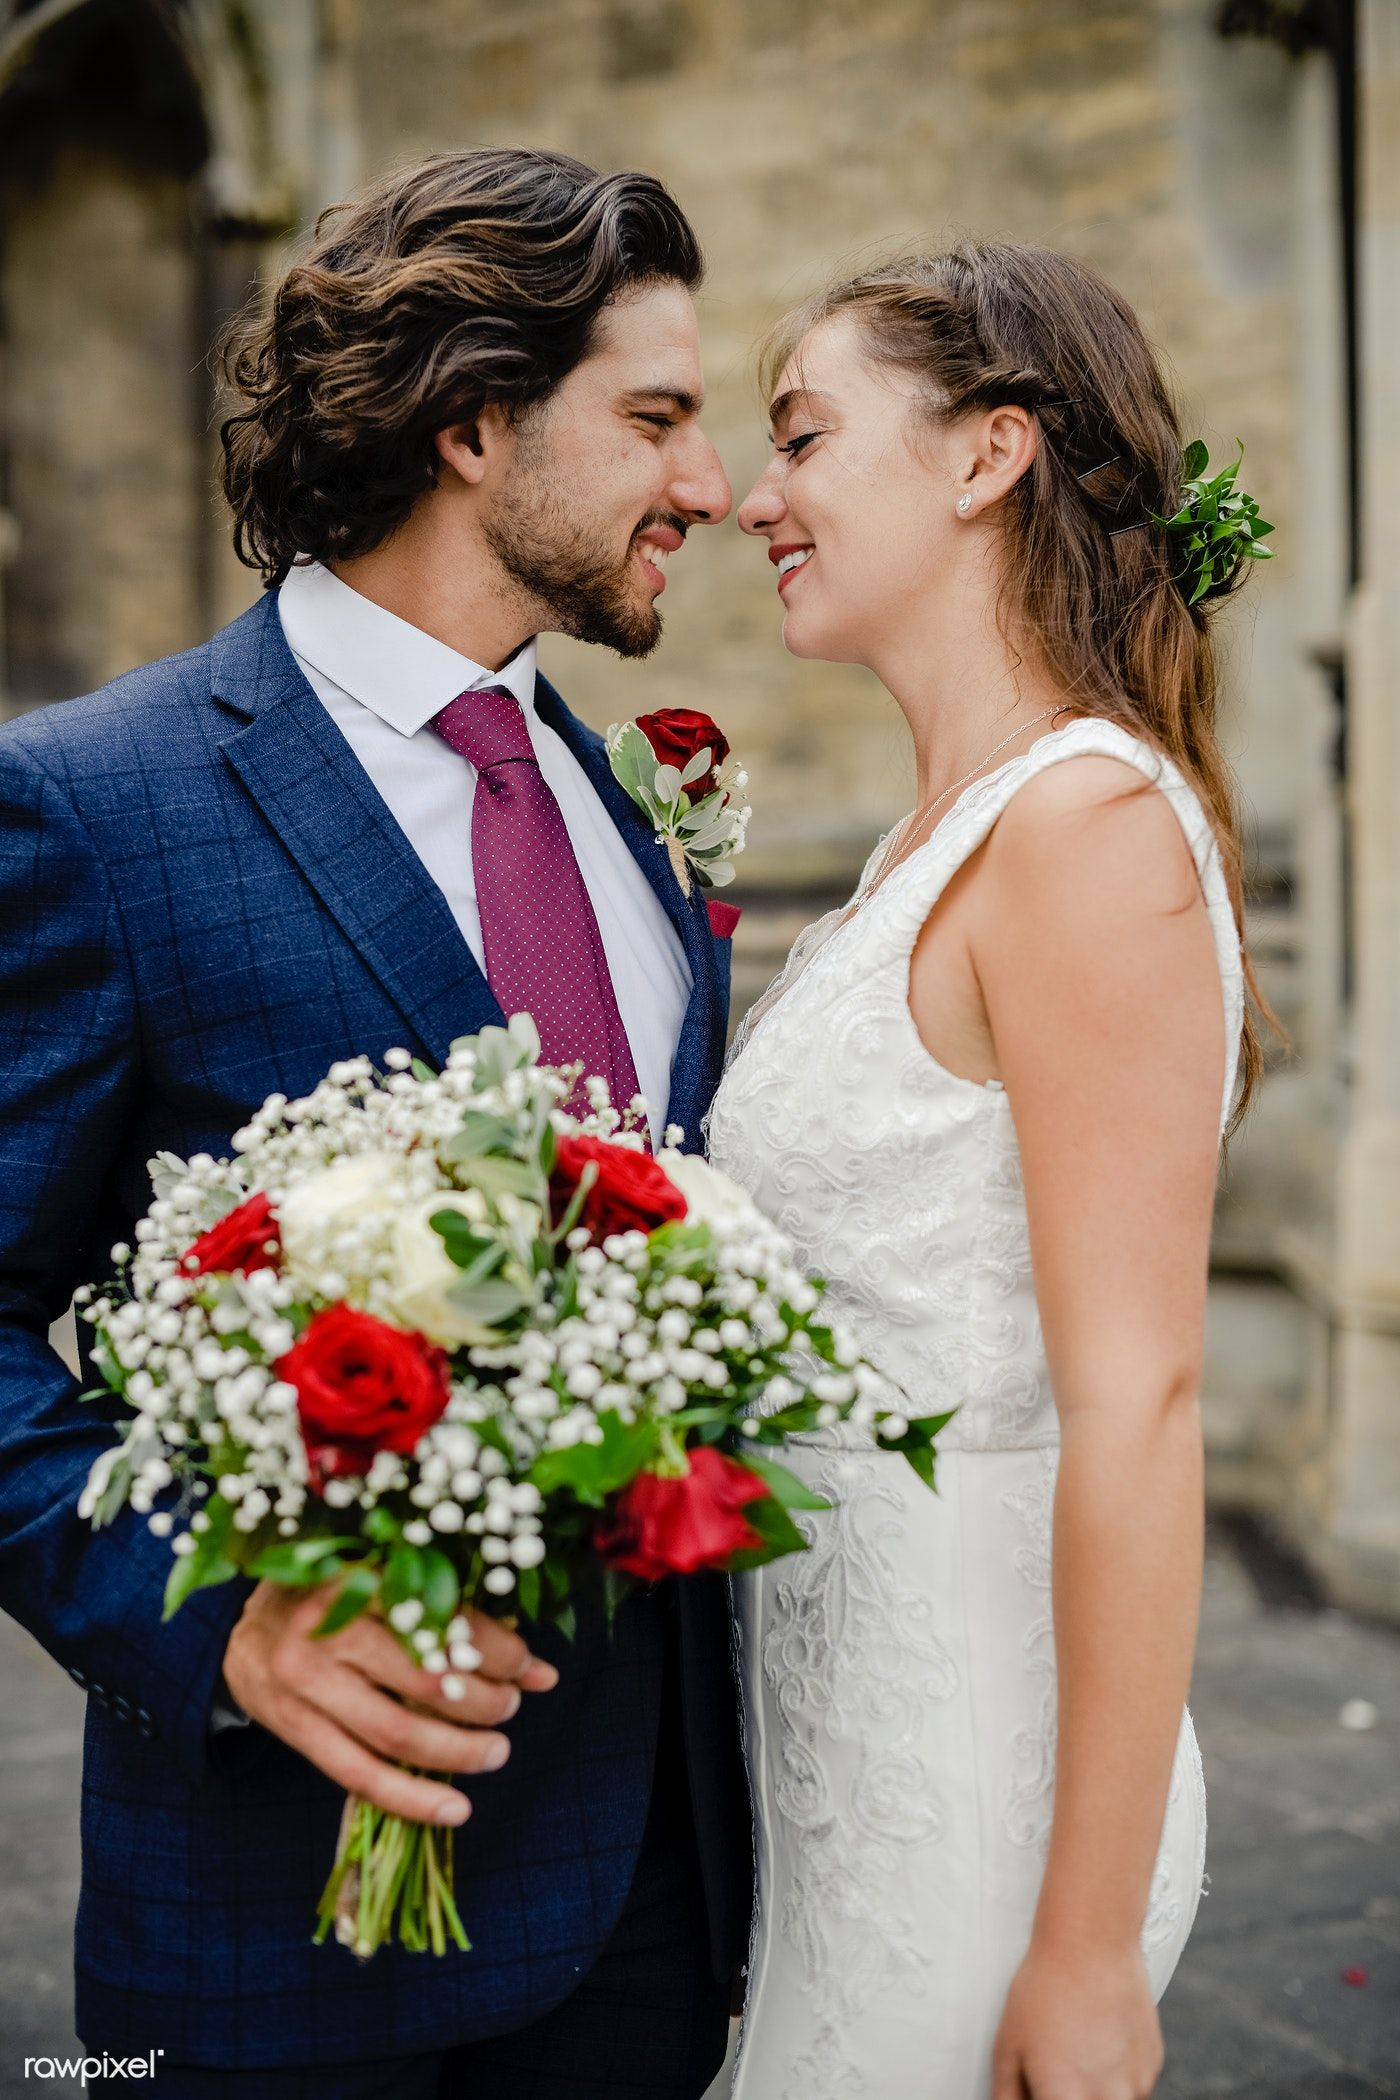 Download Premium Image Of Happy Newly Wed Couple At The Church 526742 Charleston Bride Wedding Photography Blog Legare Waring House Wedding